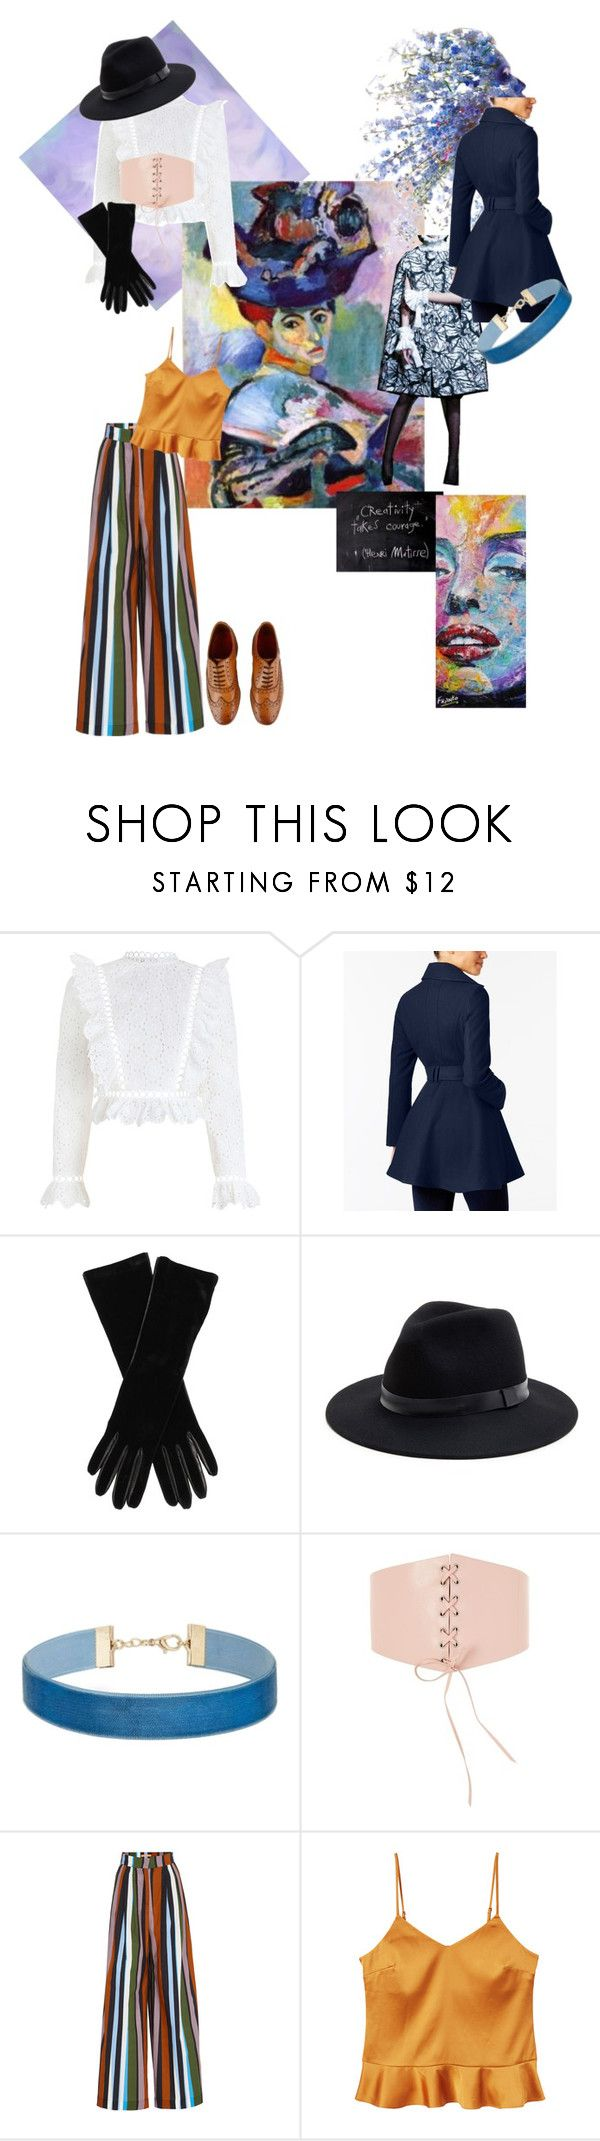 Matisse by iselinln on Polyvore featuring Zimmermann, MANGO, INC International Concepts, Topshop, Grenson, Miss Selfridge, Sole Society and Armani Collezioni